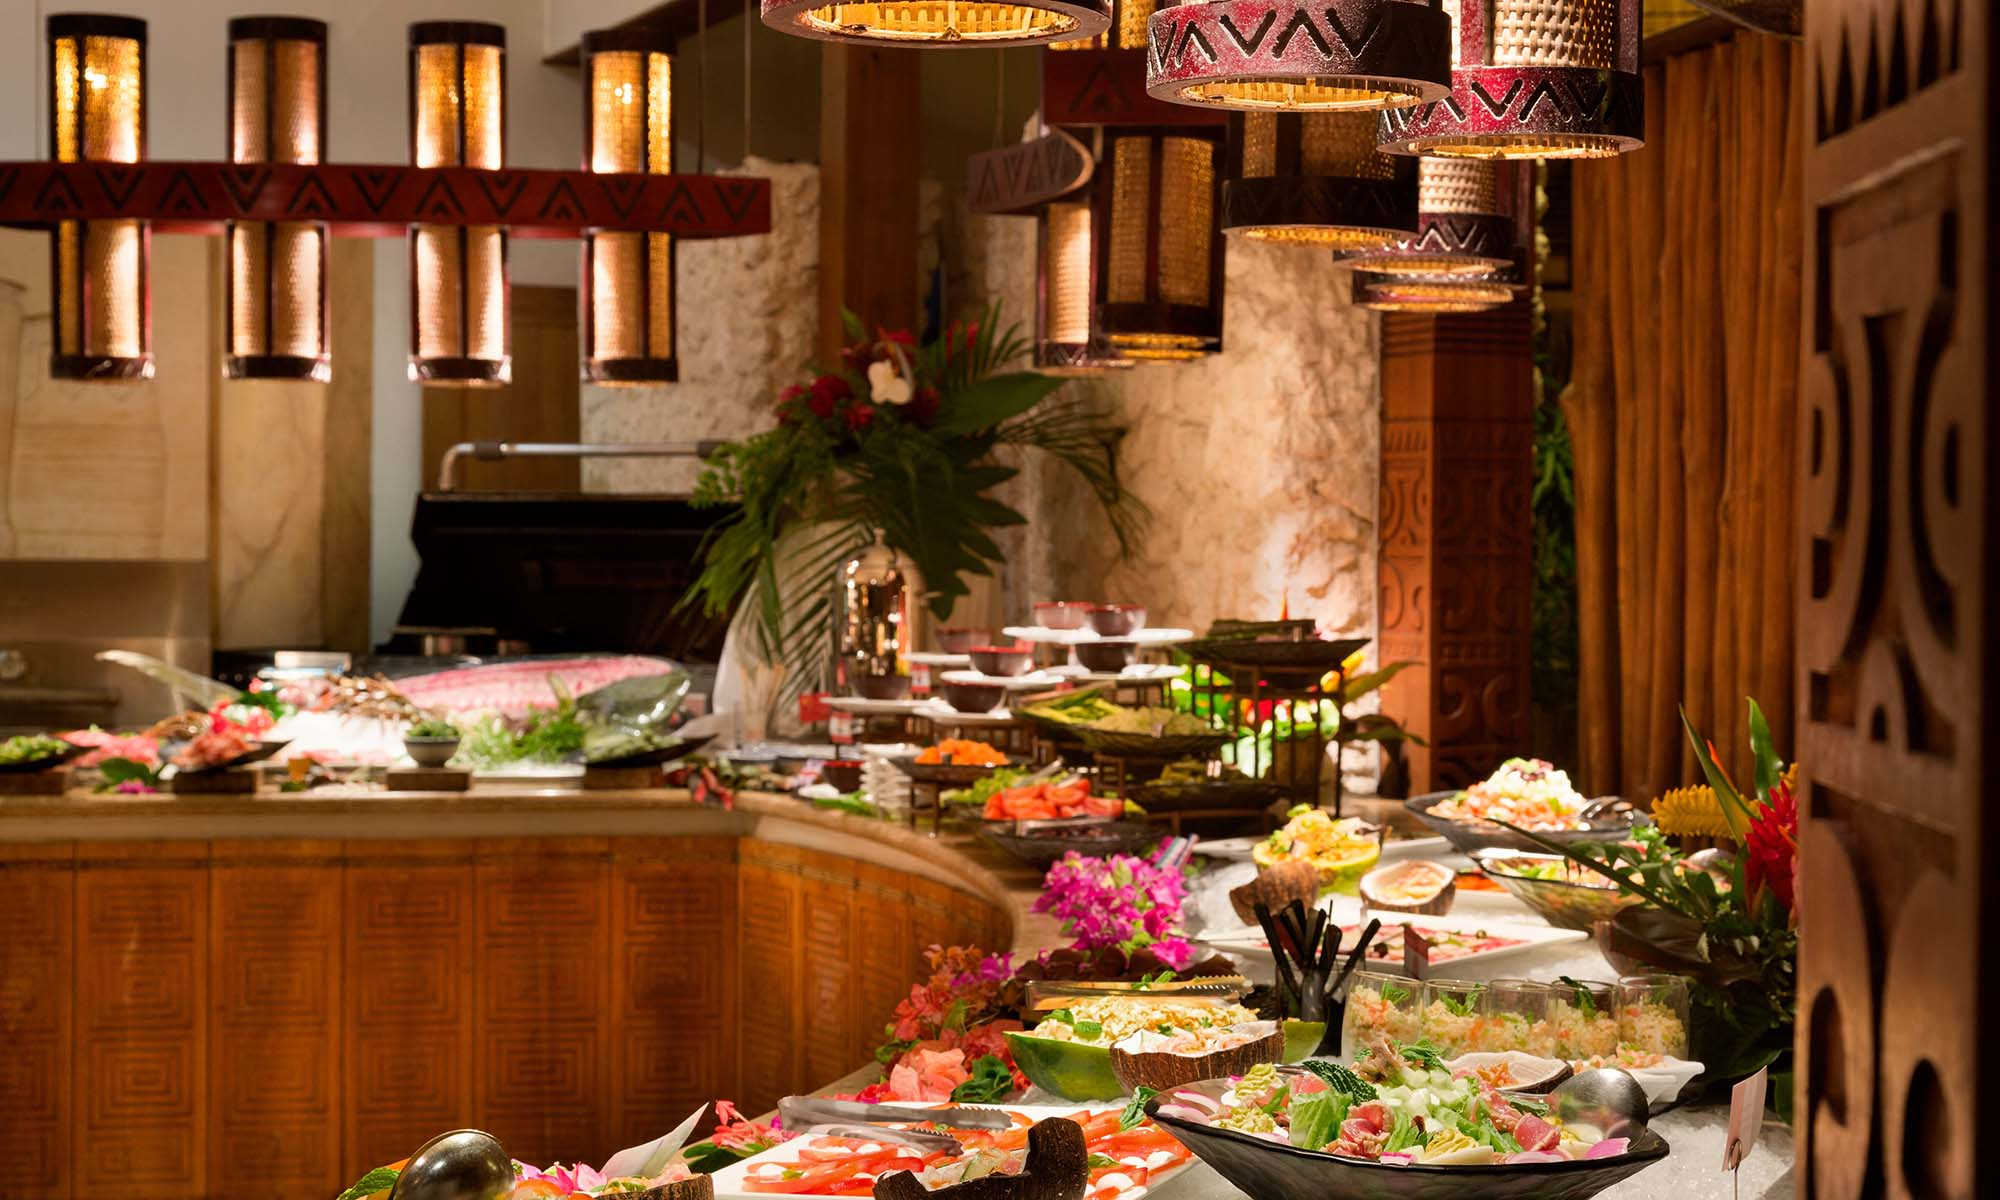 St Regis Bora Bora Resort, Dinner Buffet at Te Pahu Restaurant